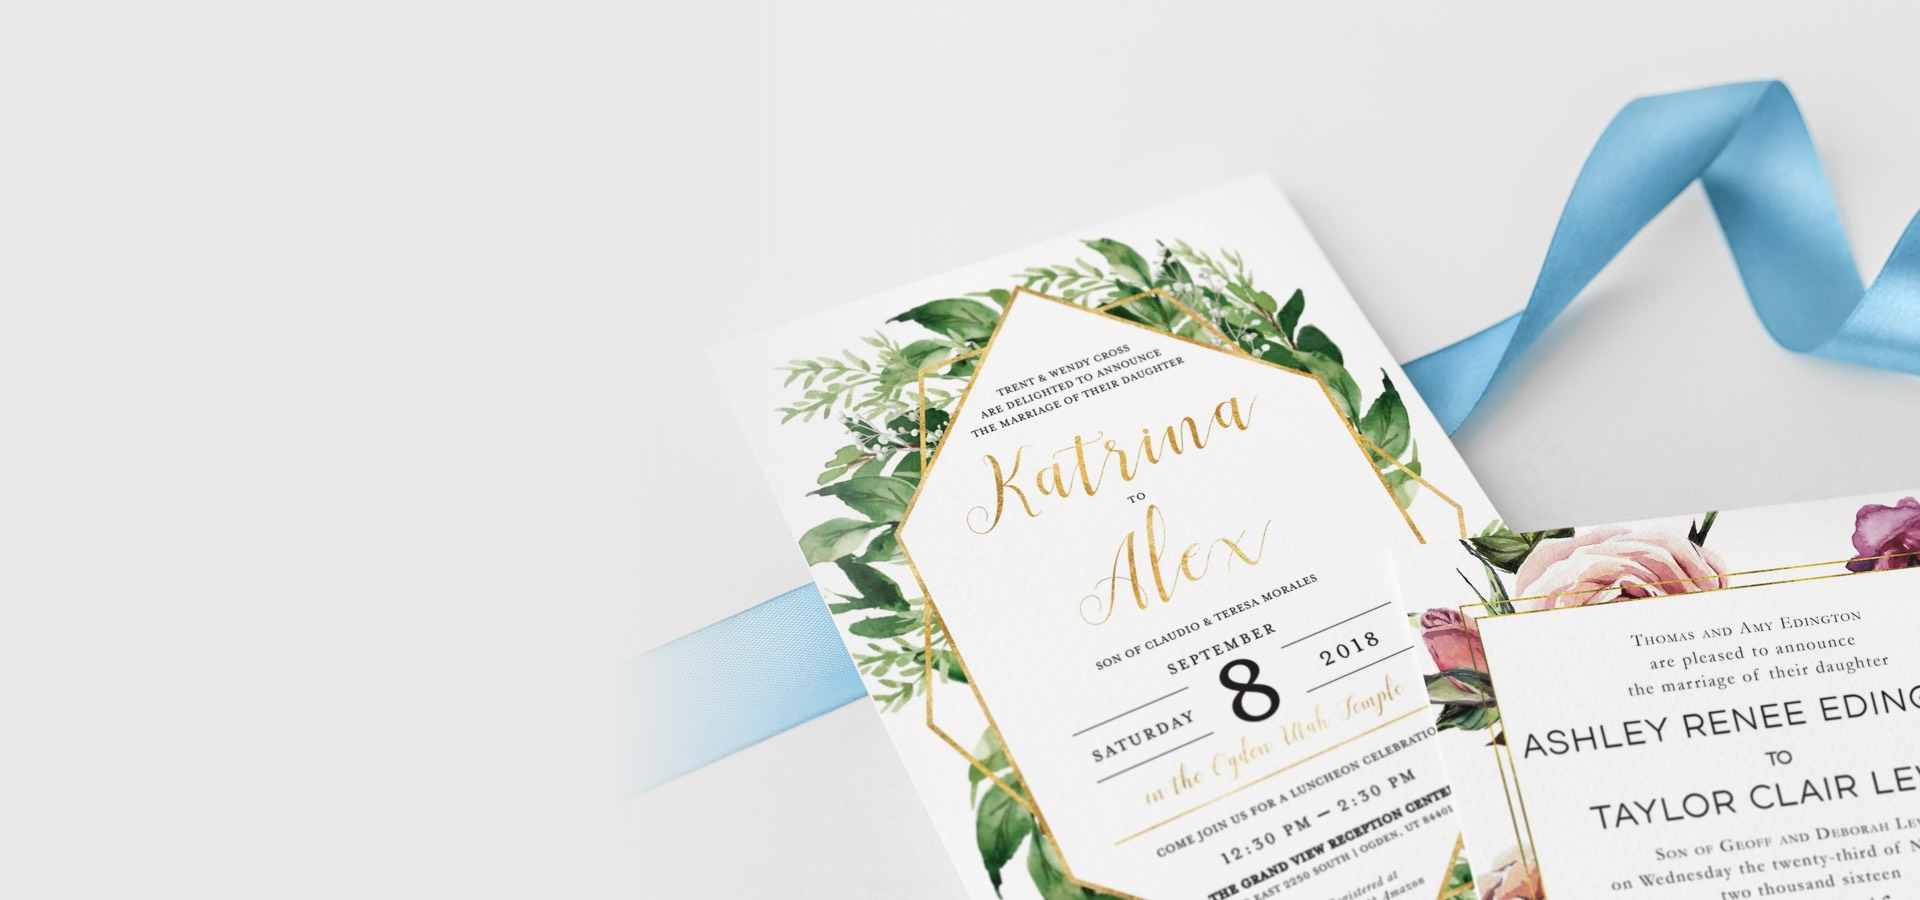 Dittobug Wedding Invitations - Affordable Wedding Invitations & Announcements